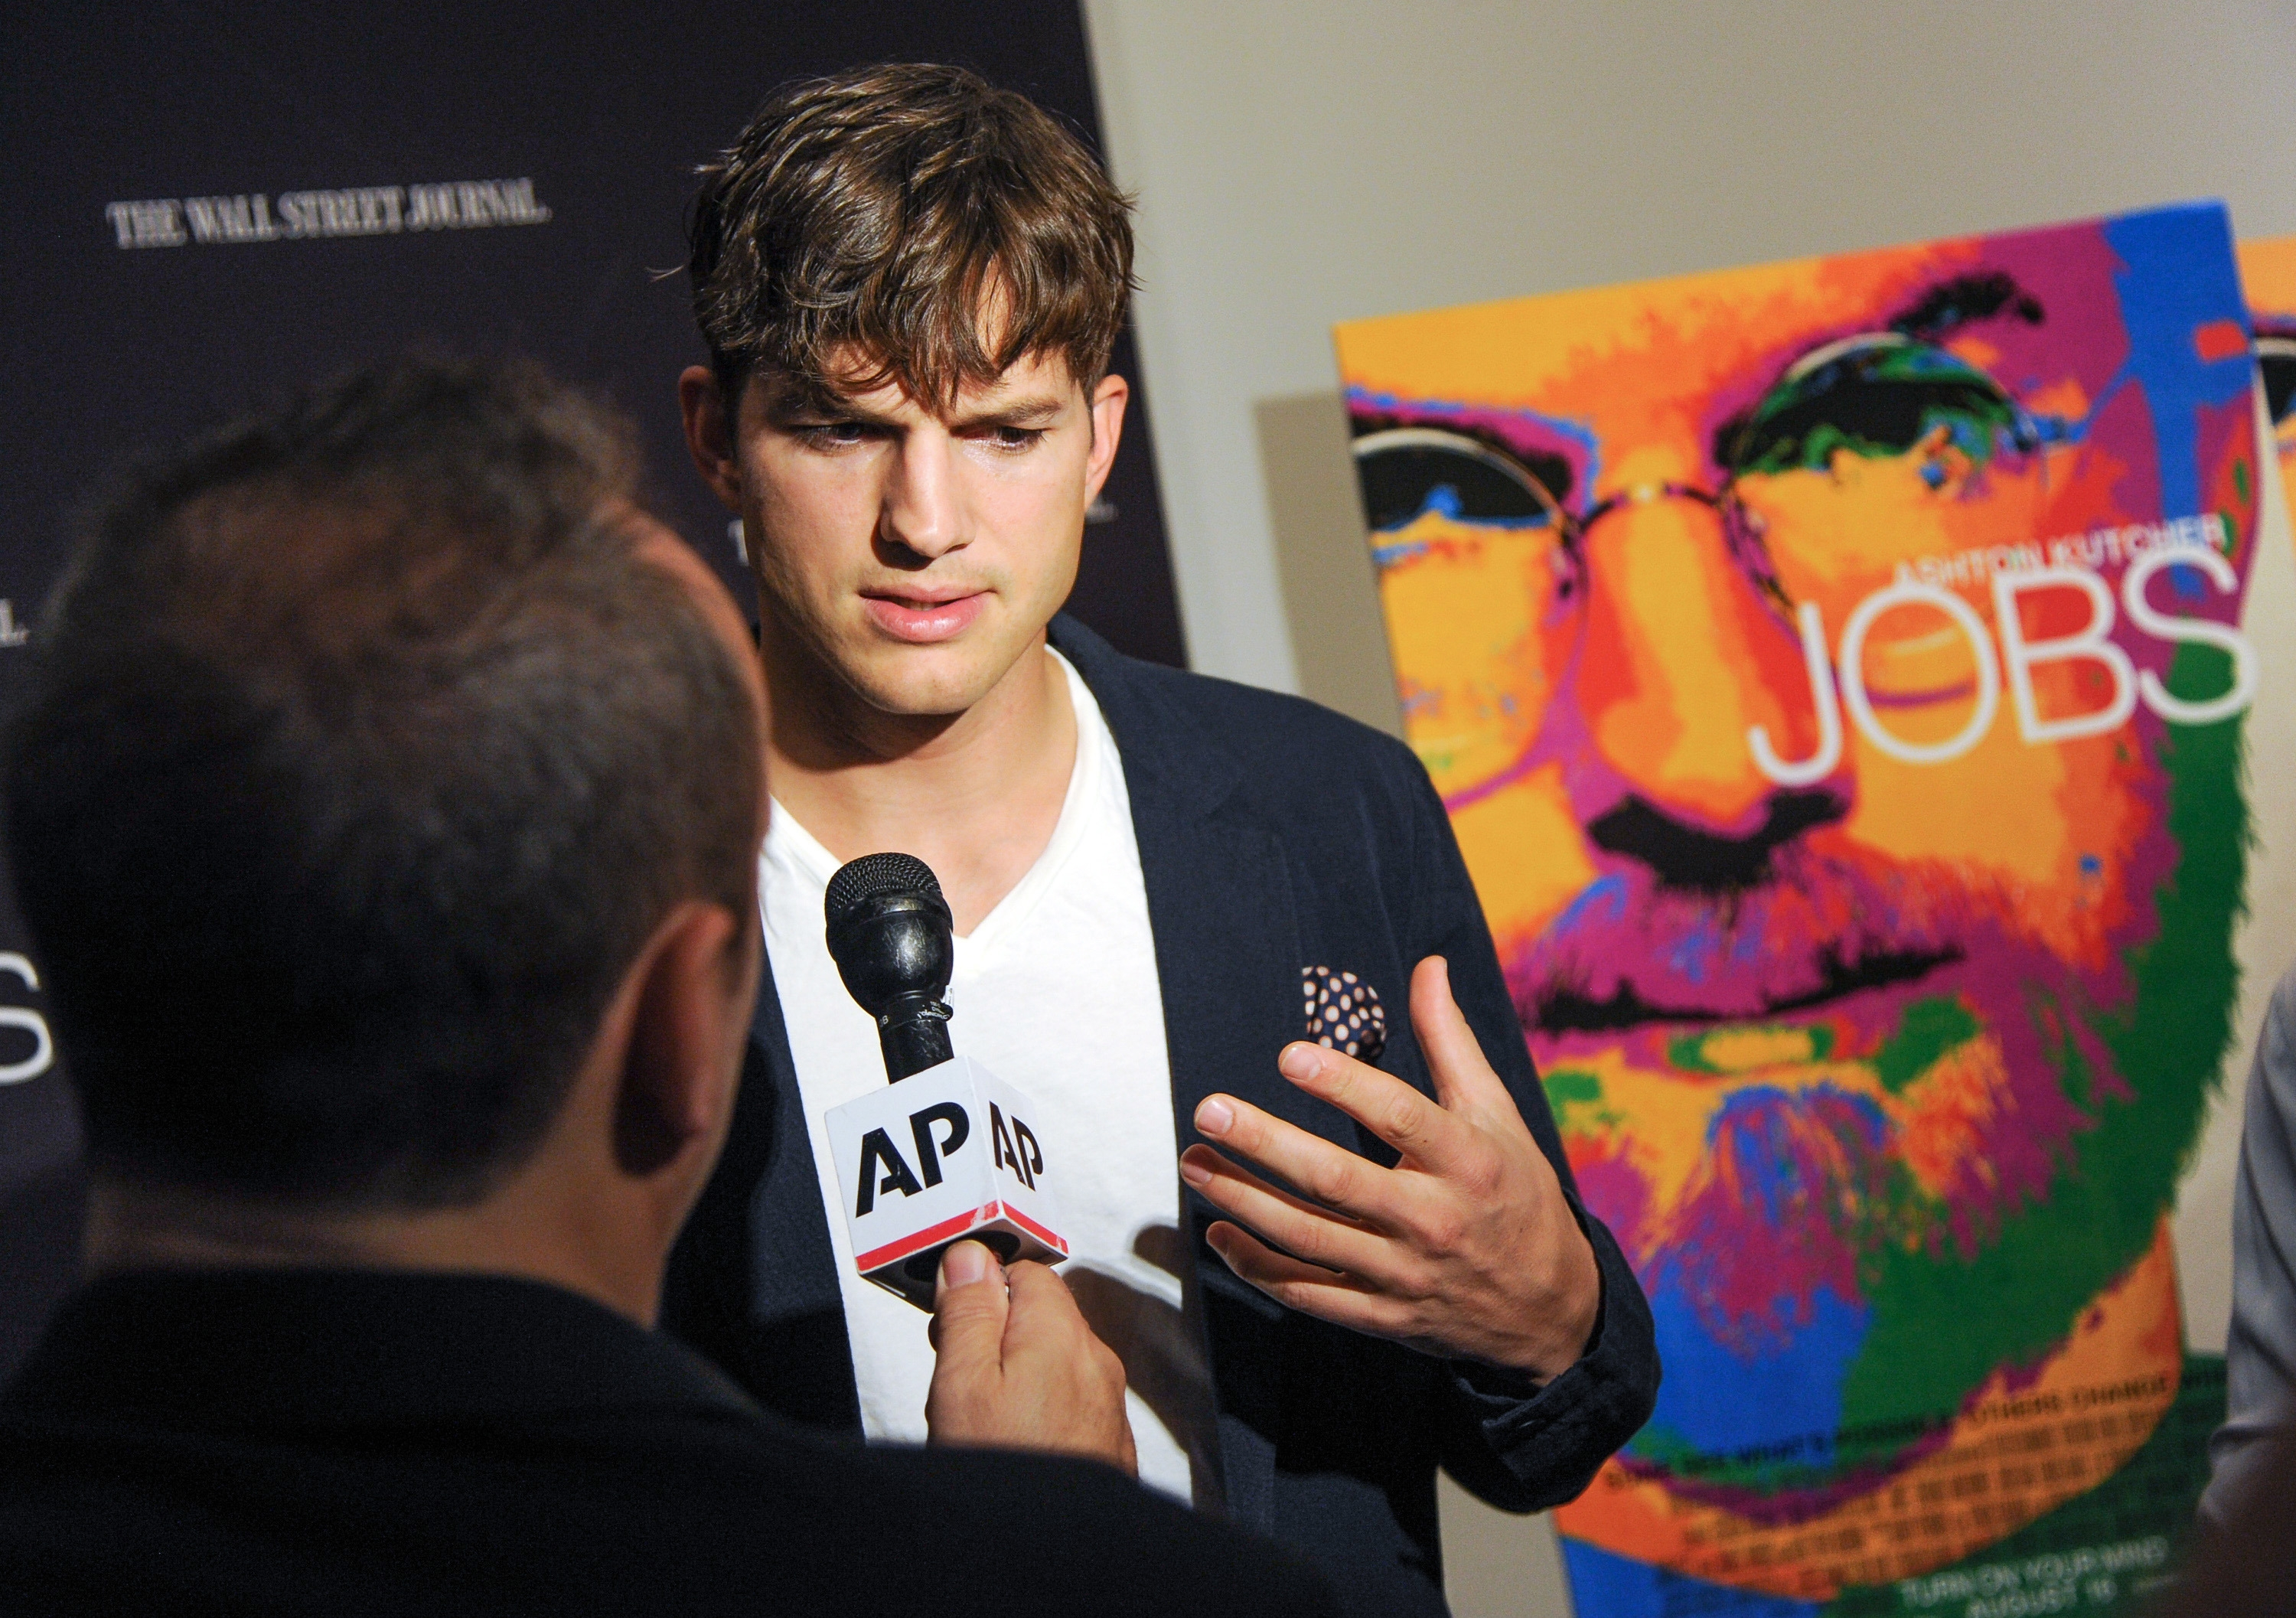 """Ashton Kutcher, shown here at the premiere of """"JOBS"""" in New York Wednesday, has gained an appreciation of Steve Jobs' ability to balance his personal and public life."""